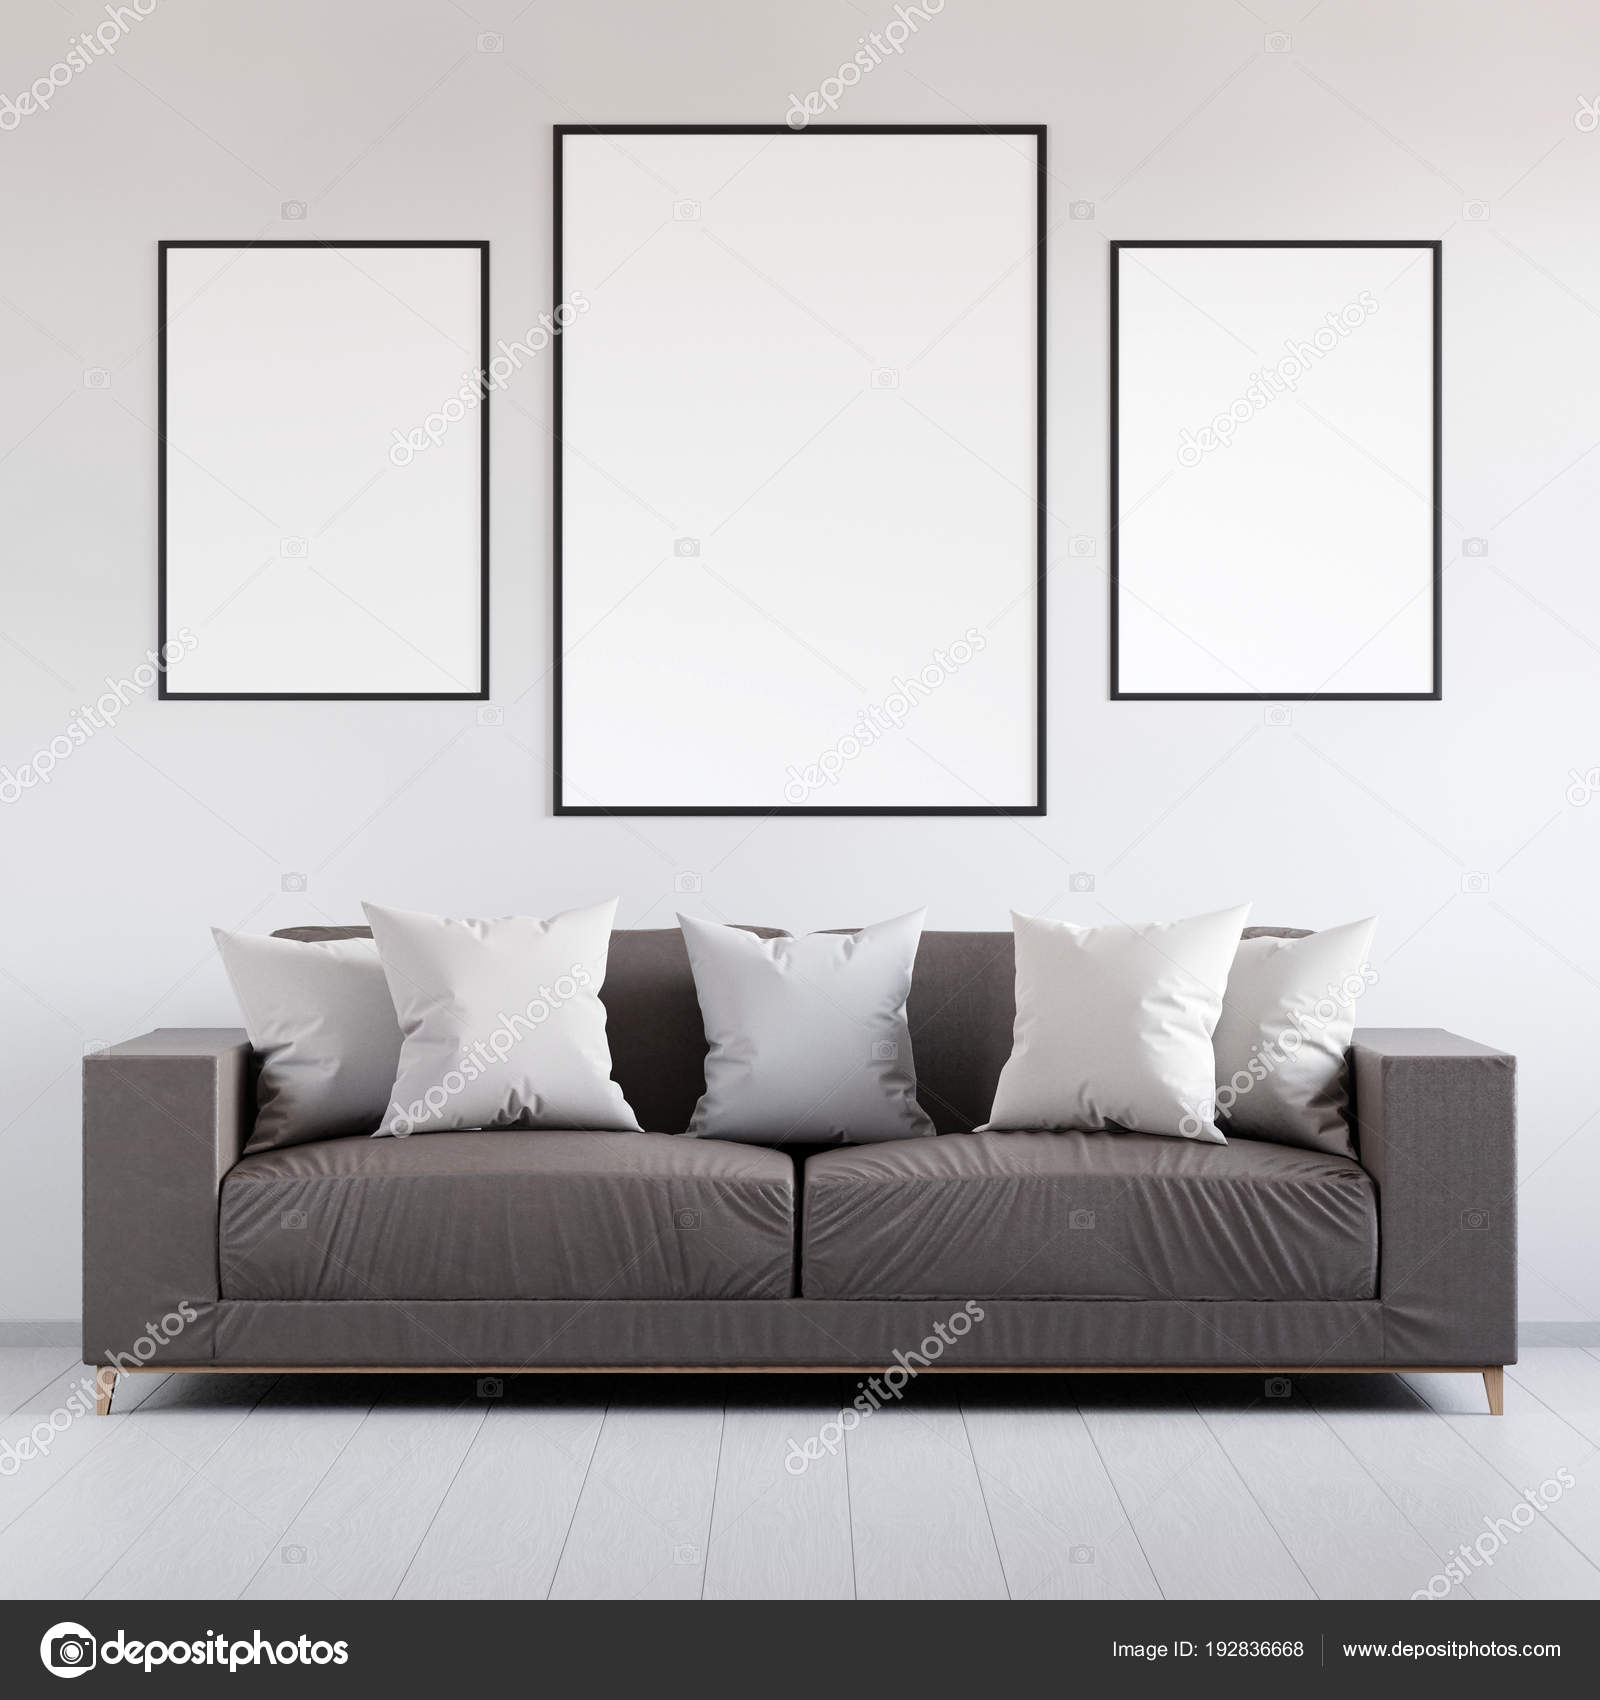 Magnificent Mockup Poster In The Interior With Leather Sofa 3D Render Andrewgaddart Wooden Chair Designs For Living Room Andrewgaddartcom